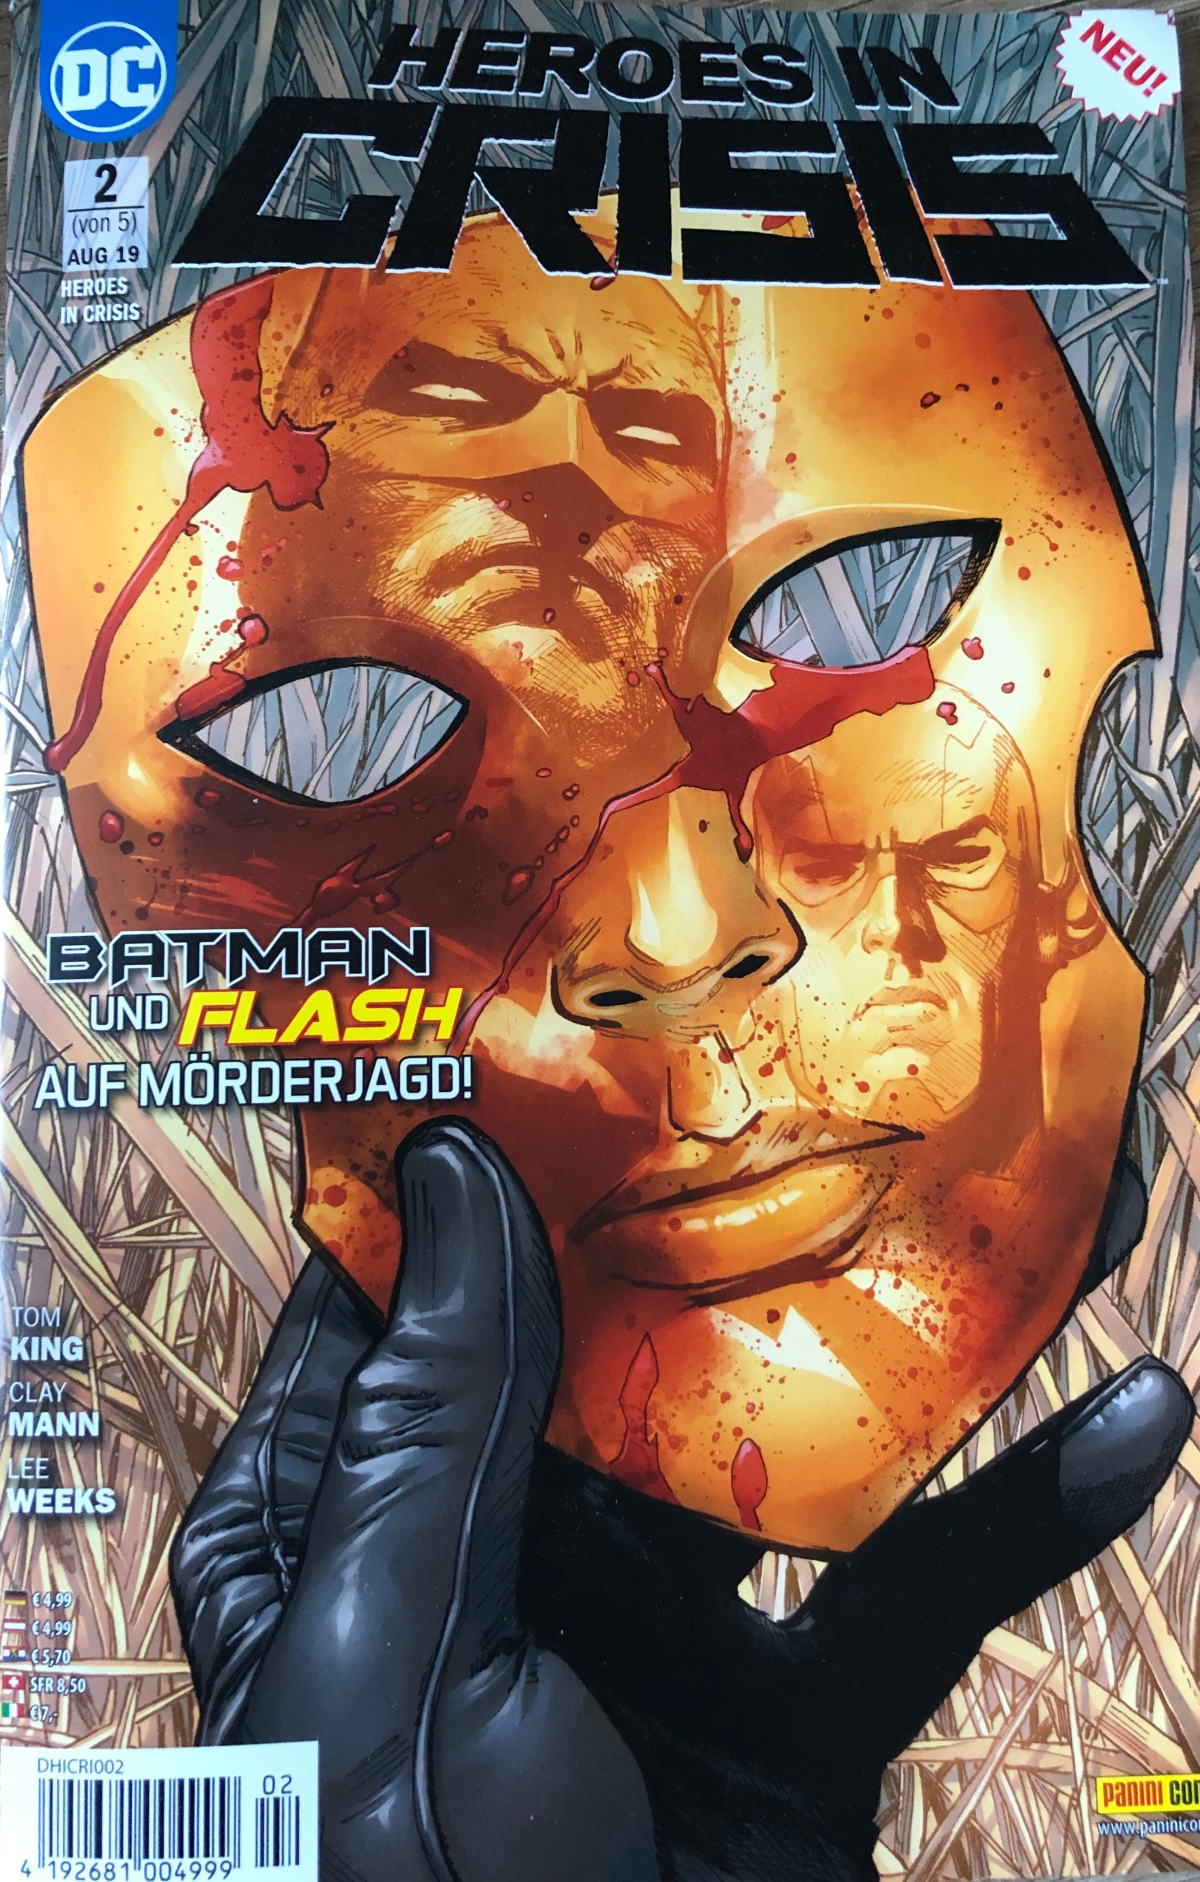 Heroes in Crisis Band 2 (#3 & #4)Review